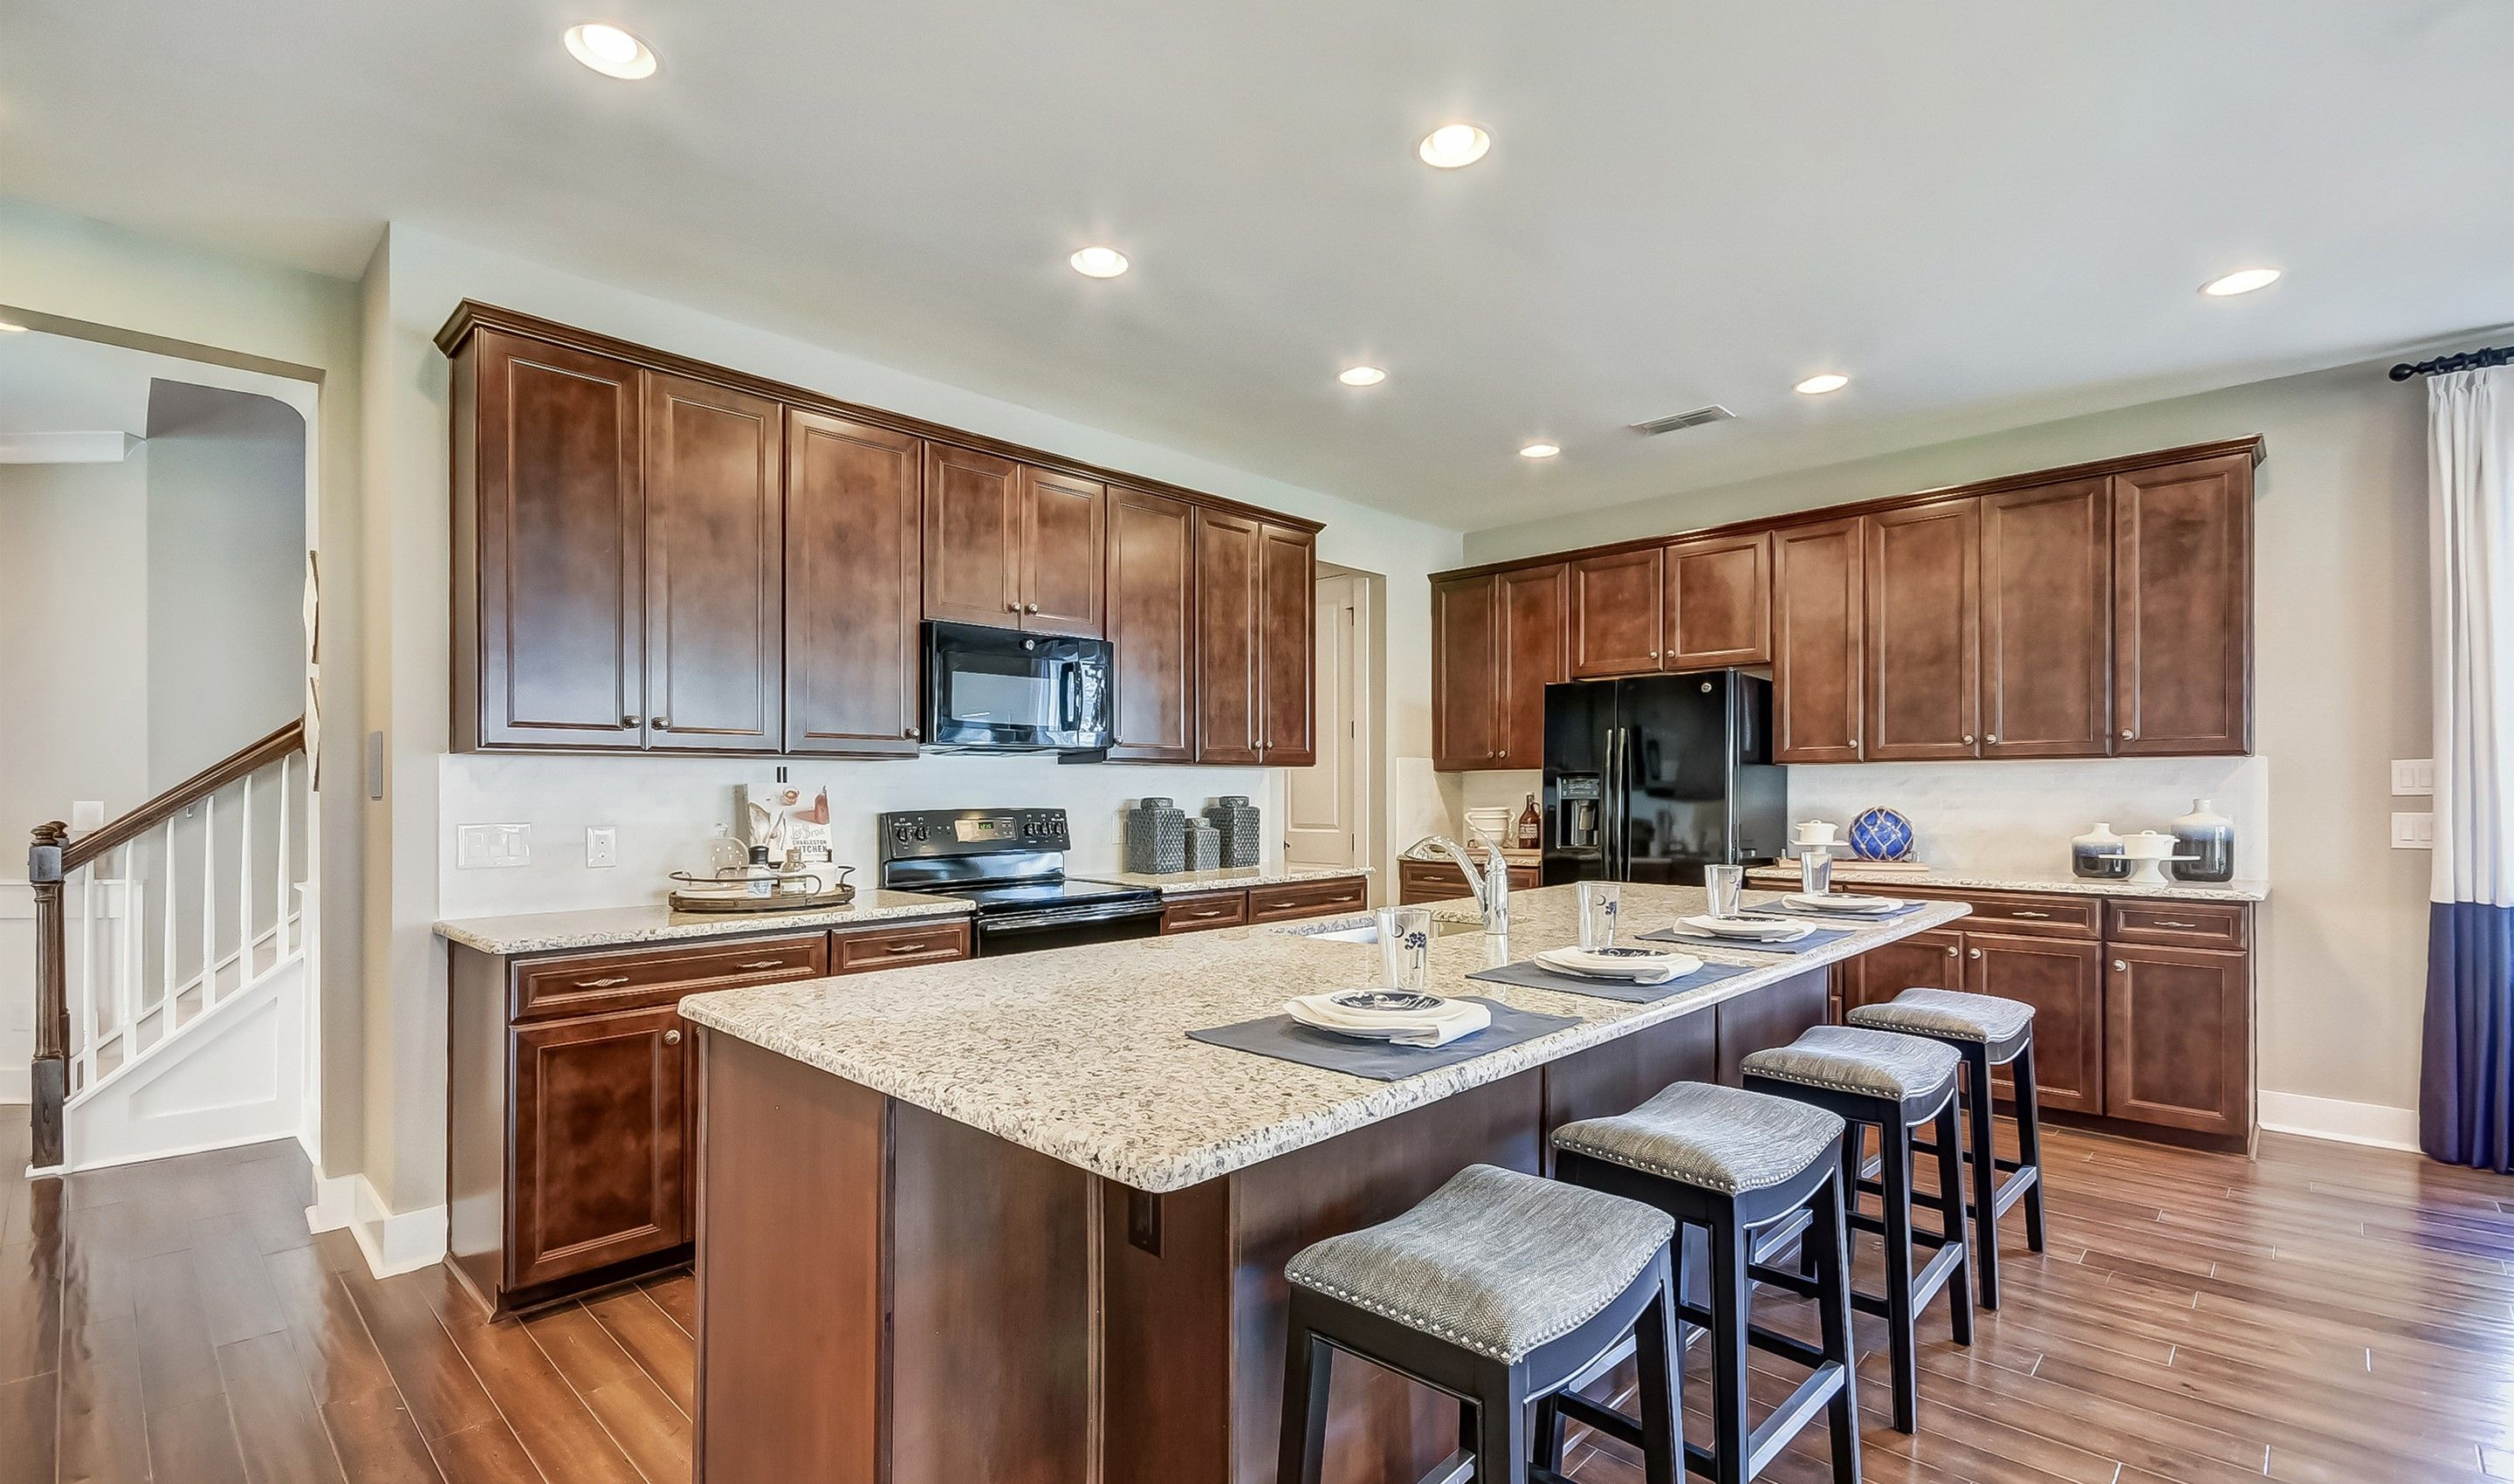 Kitchen featured in the Donegal Loft By K. Hovnanian's® Four Seasons in Hilton Head, SC